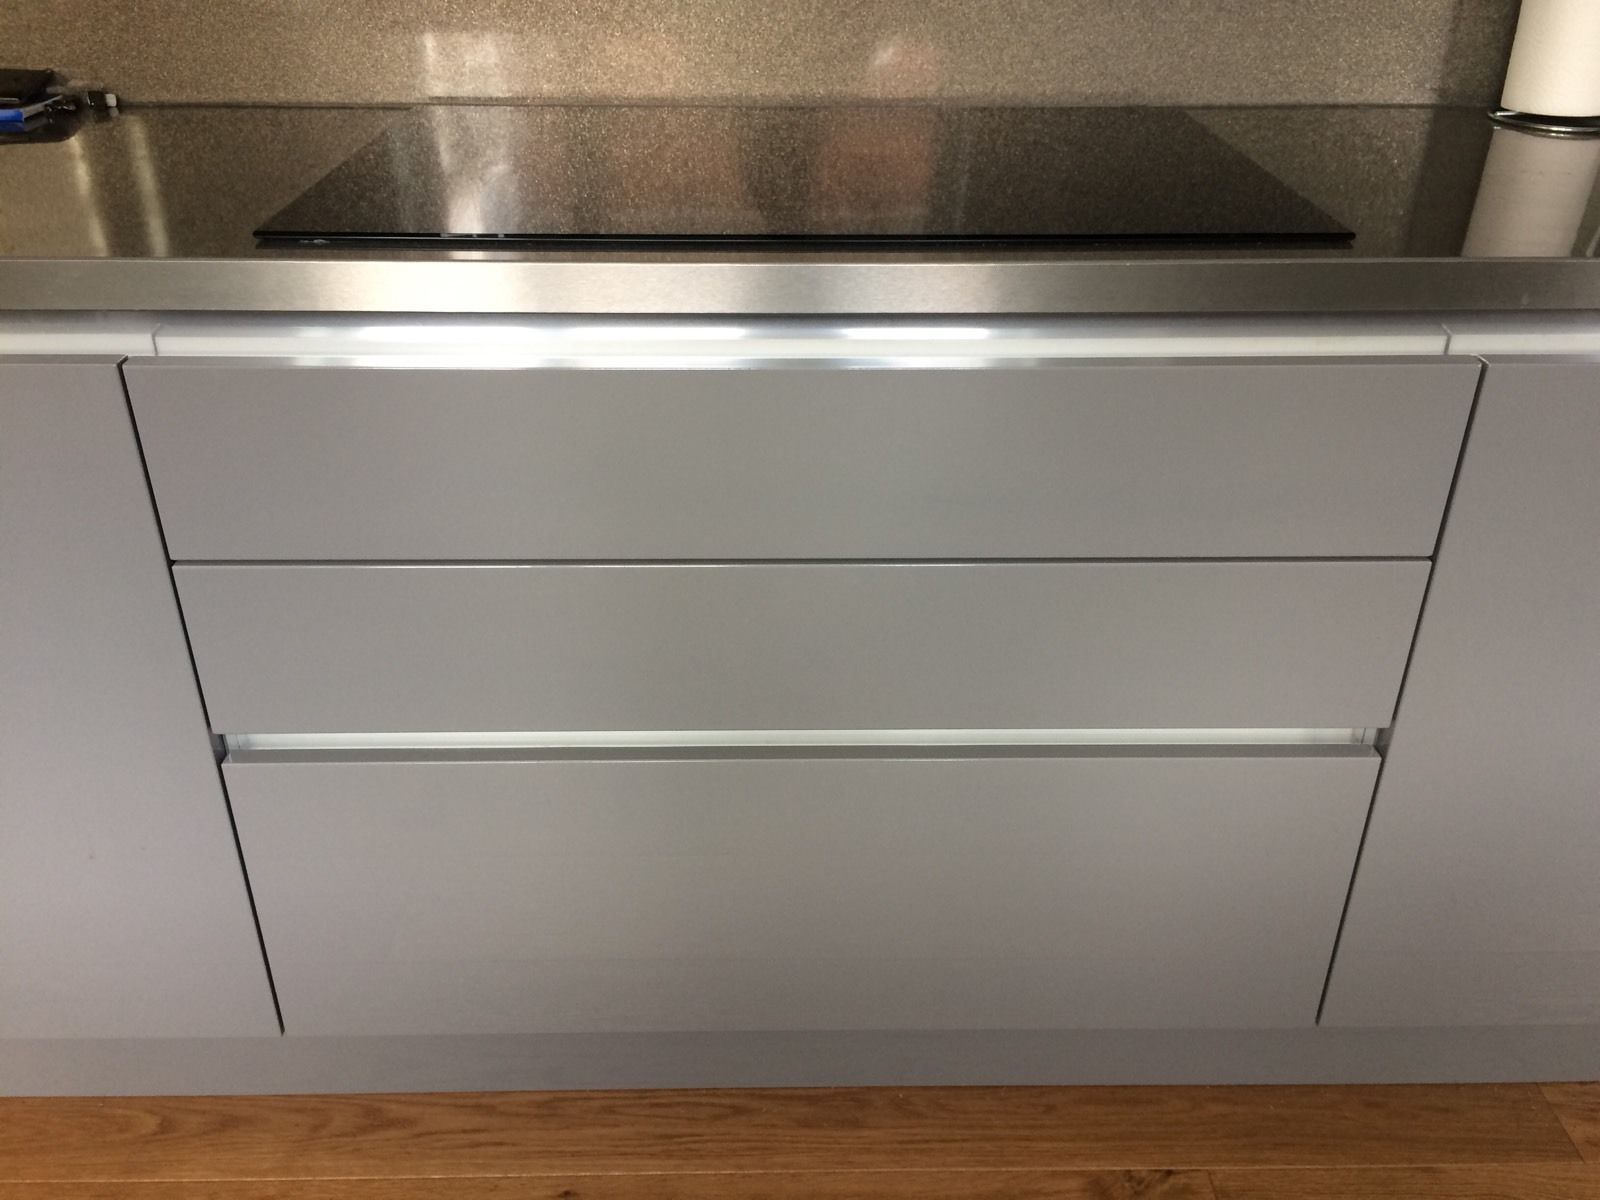 Wren linea linda barker gullwing grey gloss 1m 3 drawer for Grey kitchen units sale